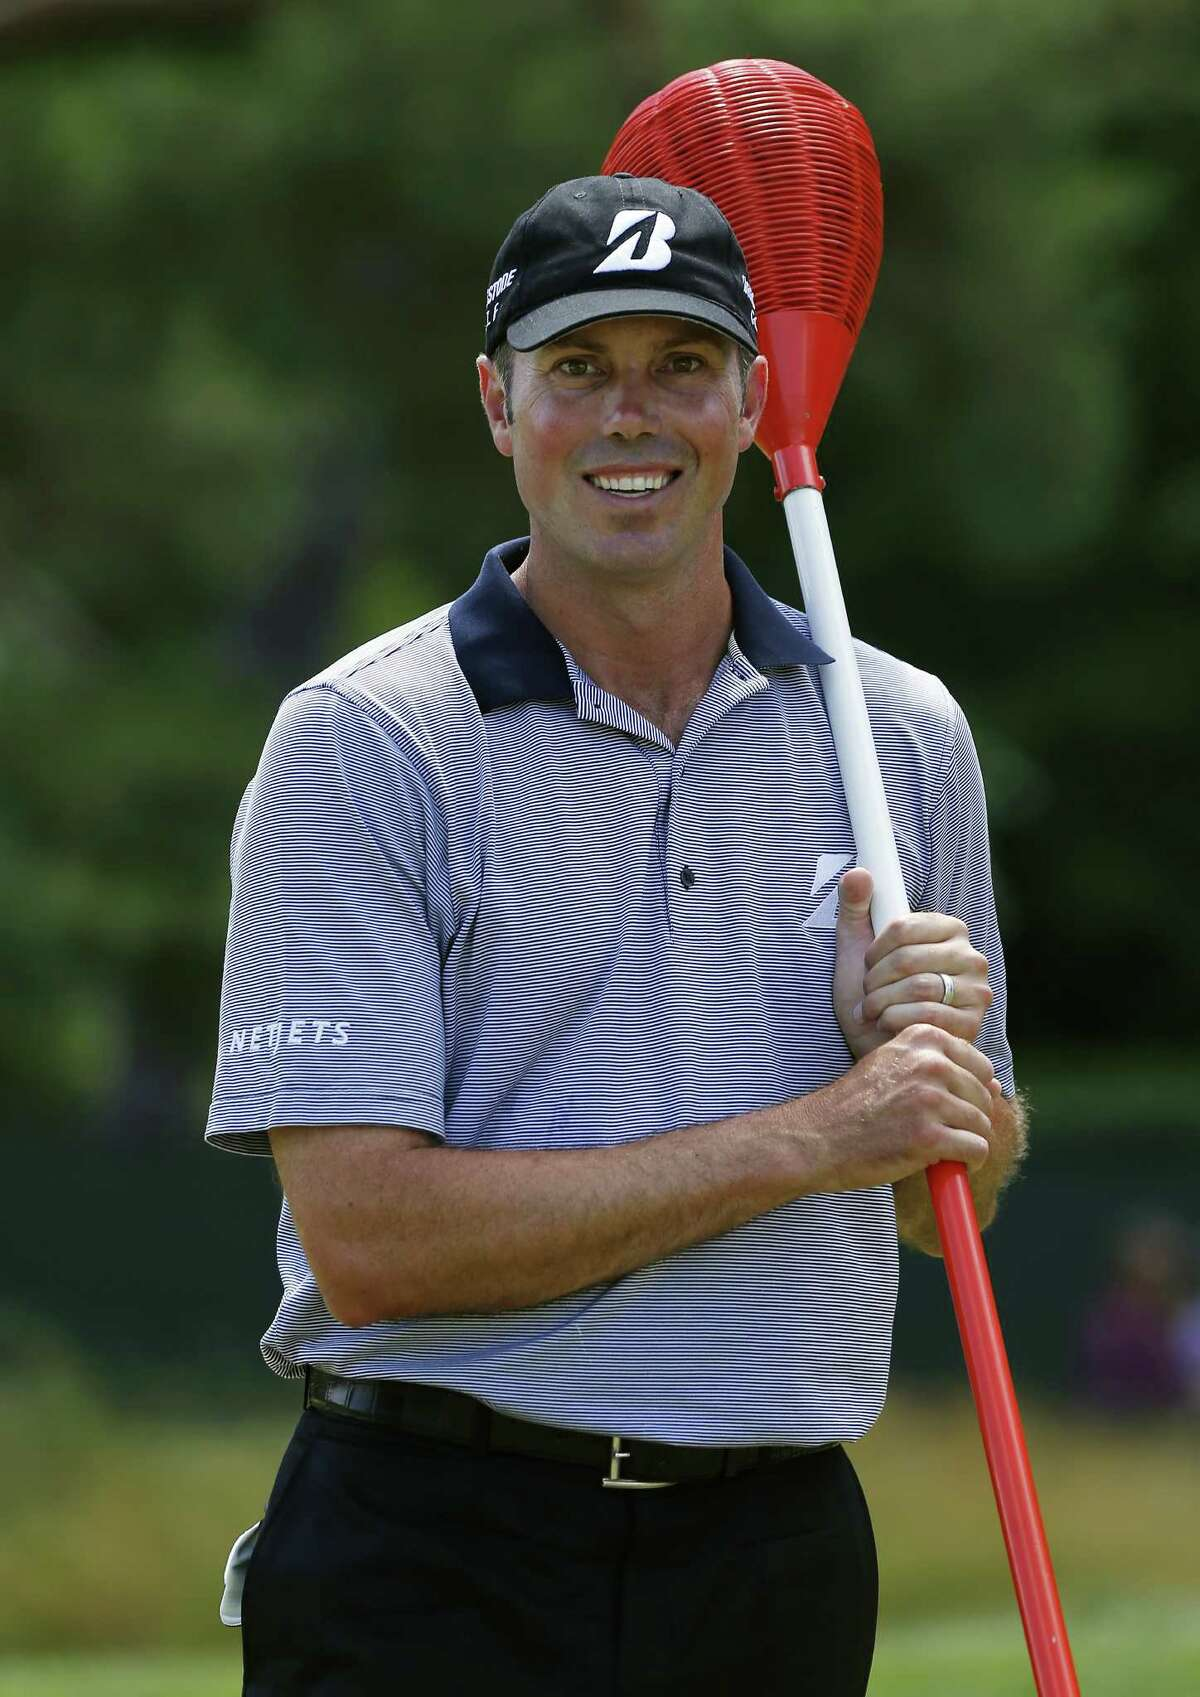 The seemingly ever-smiling Matt Kuchar clowns around with one of Merion's wicker basket flagsticks.